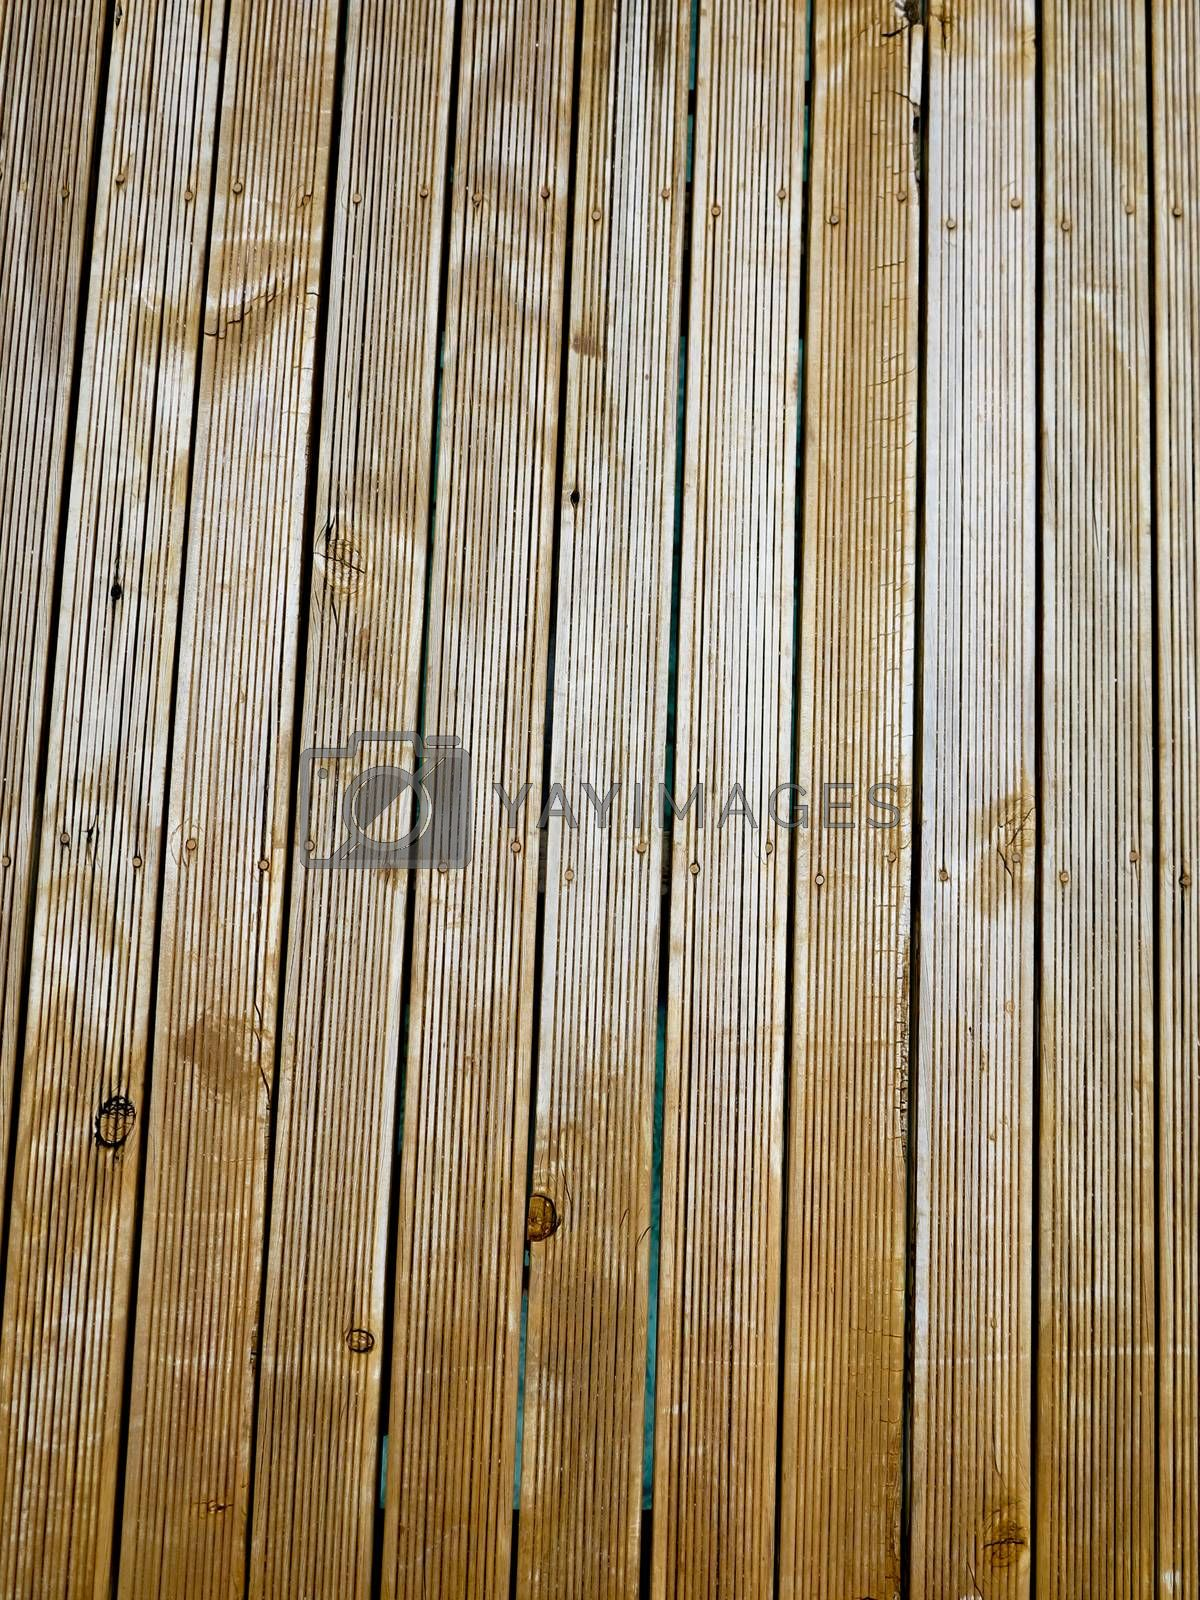 Wood texture with natural patterns by get4net